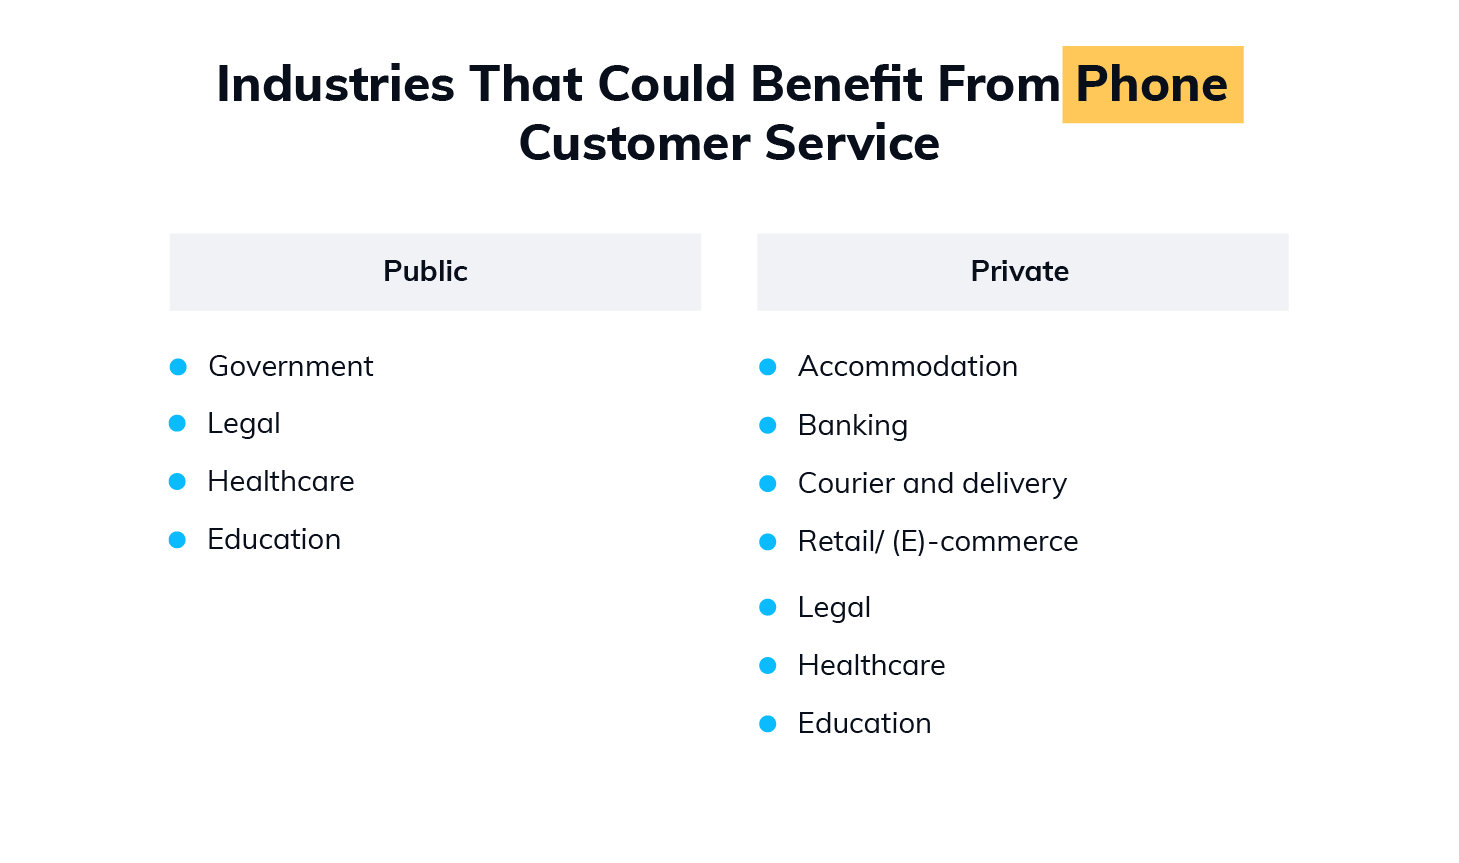 Industries Would Benefit from Phone Customer Service the Most